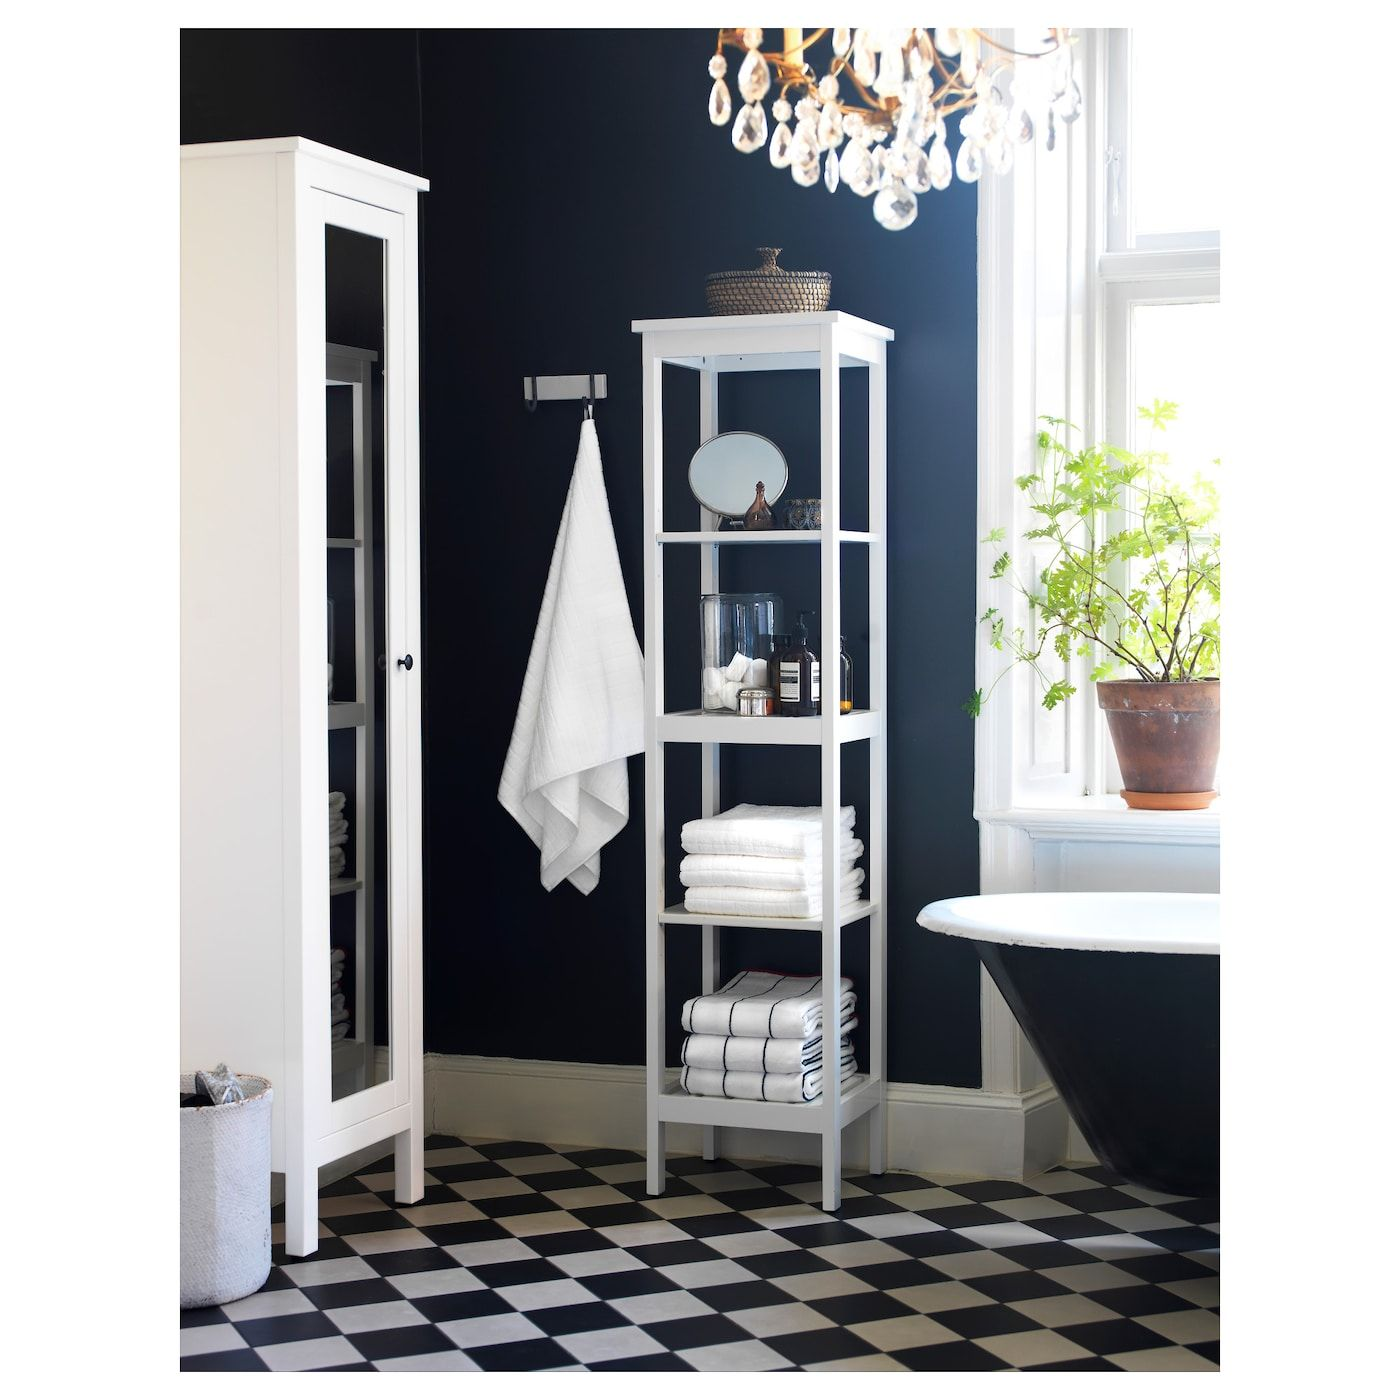 Pin Auf Bathroom Makeovers